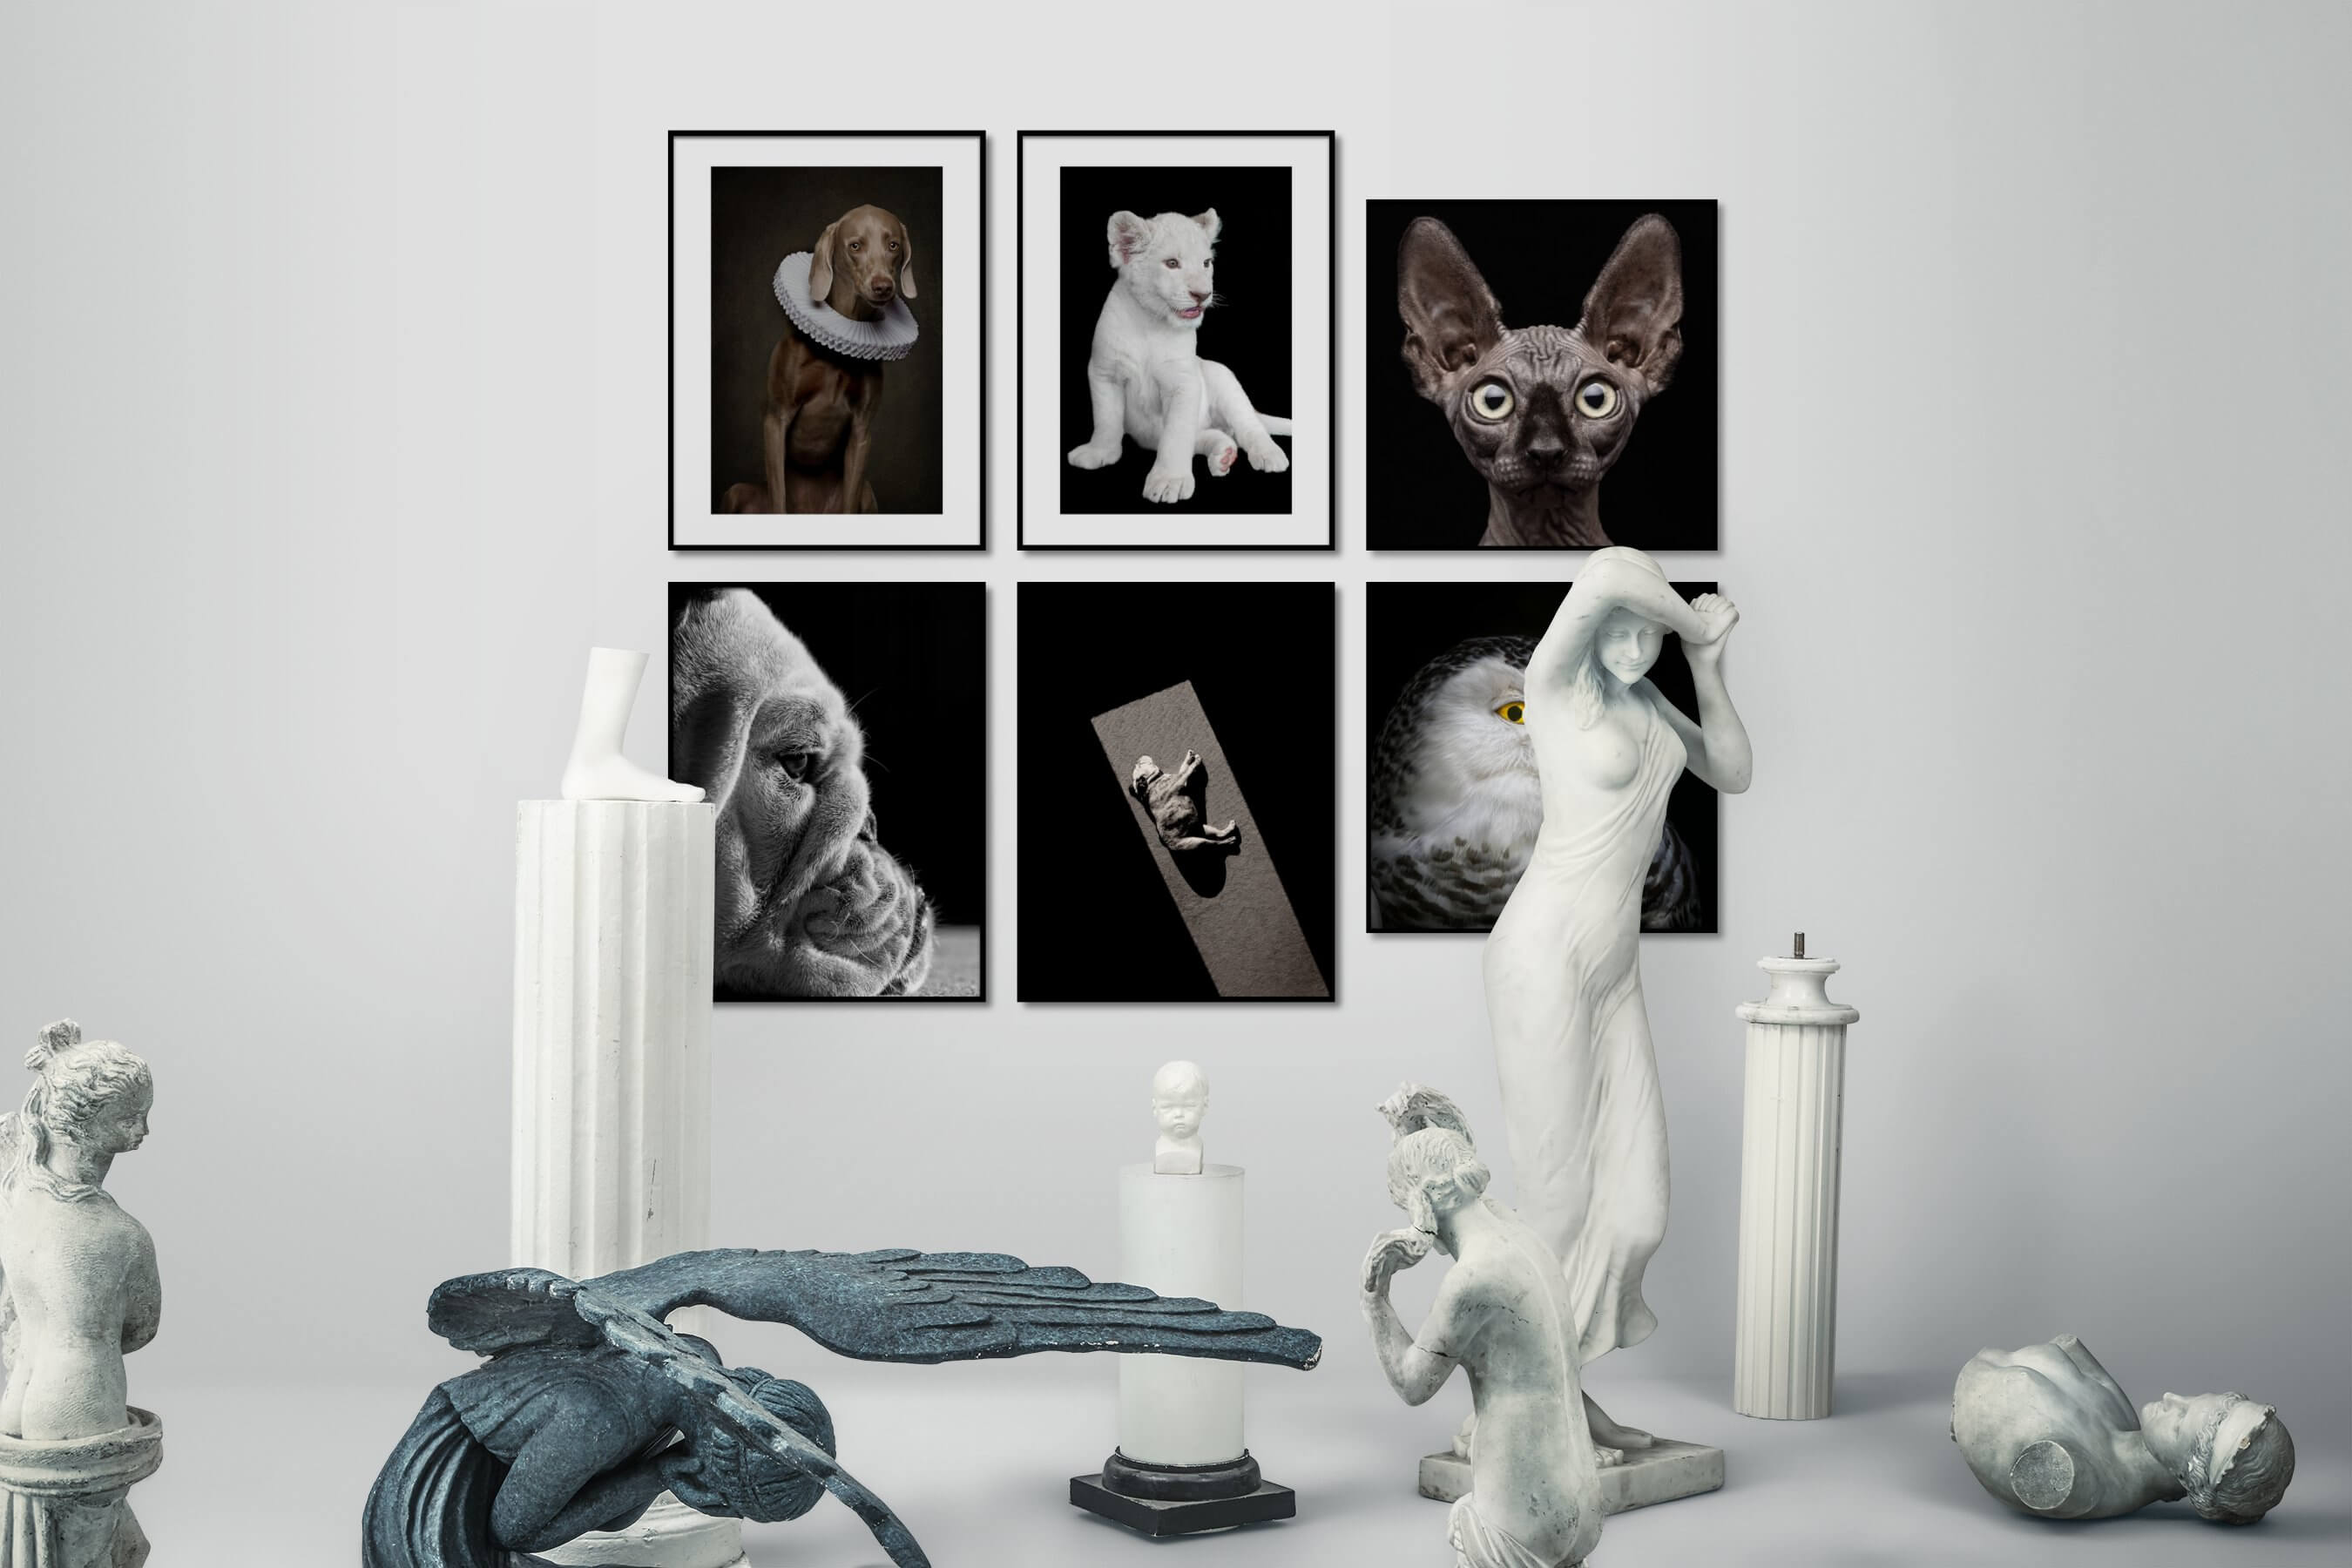 Gallery wall idea with six framed pictures arranged on a wall depicting Animals, Vintage, Black & White, Dark Tones, and For the Minimalist